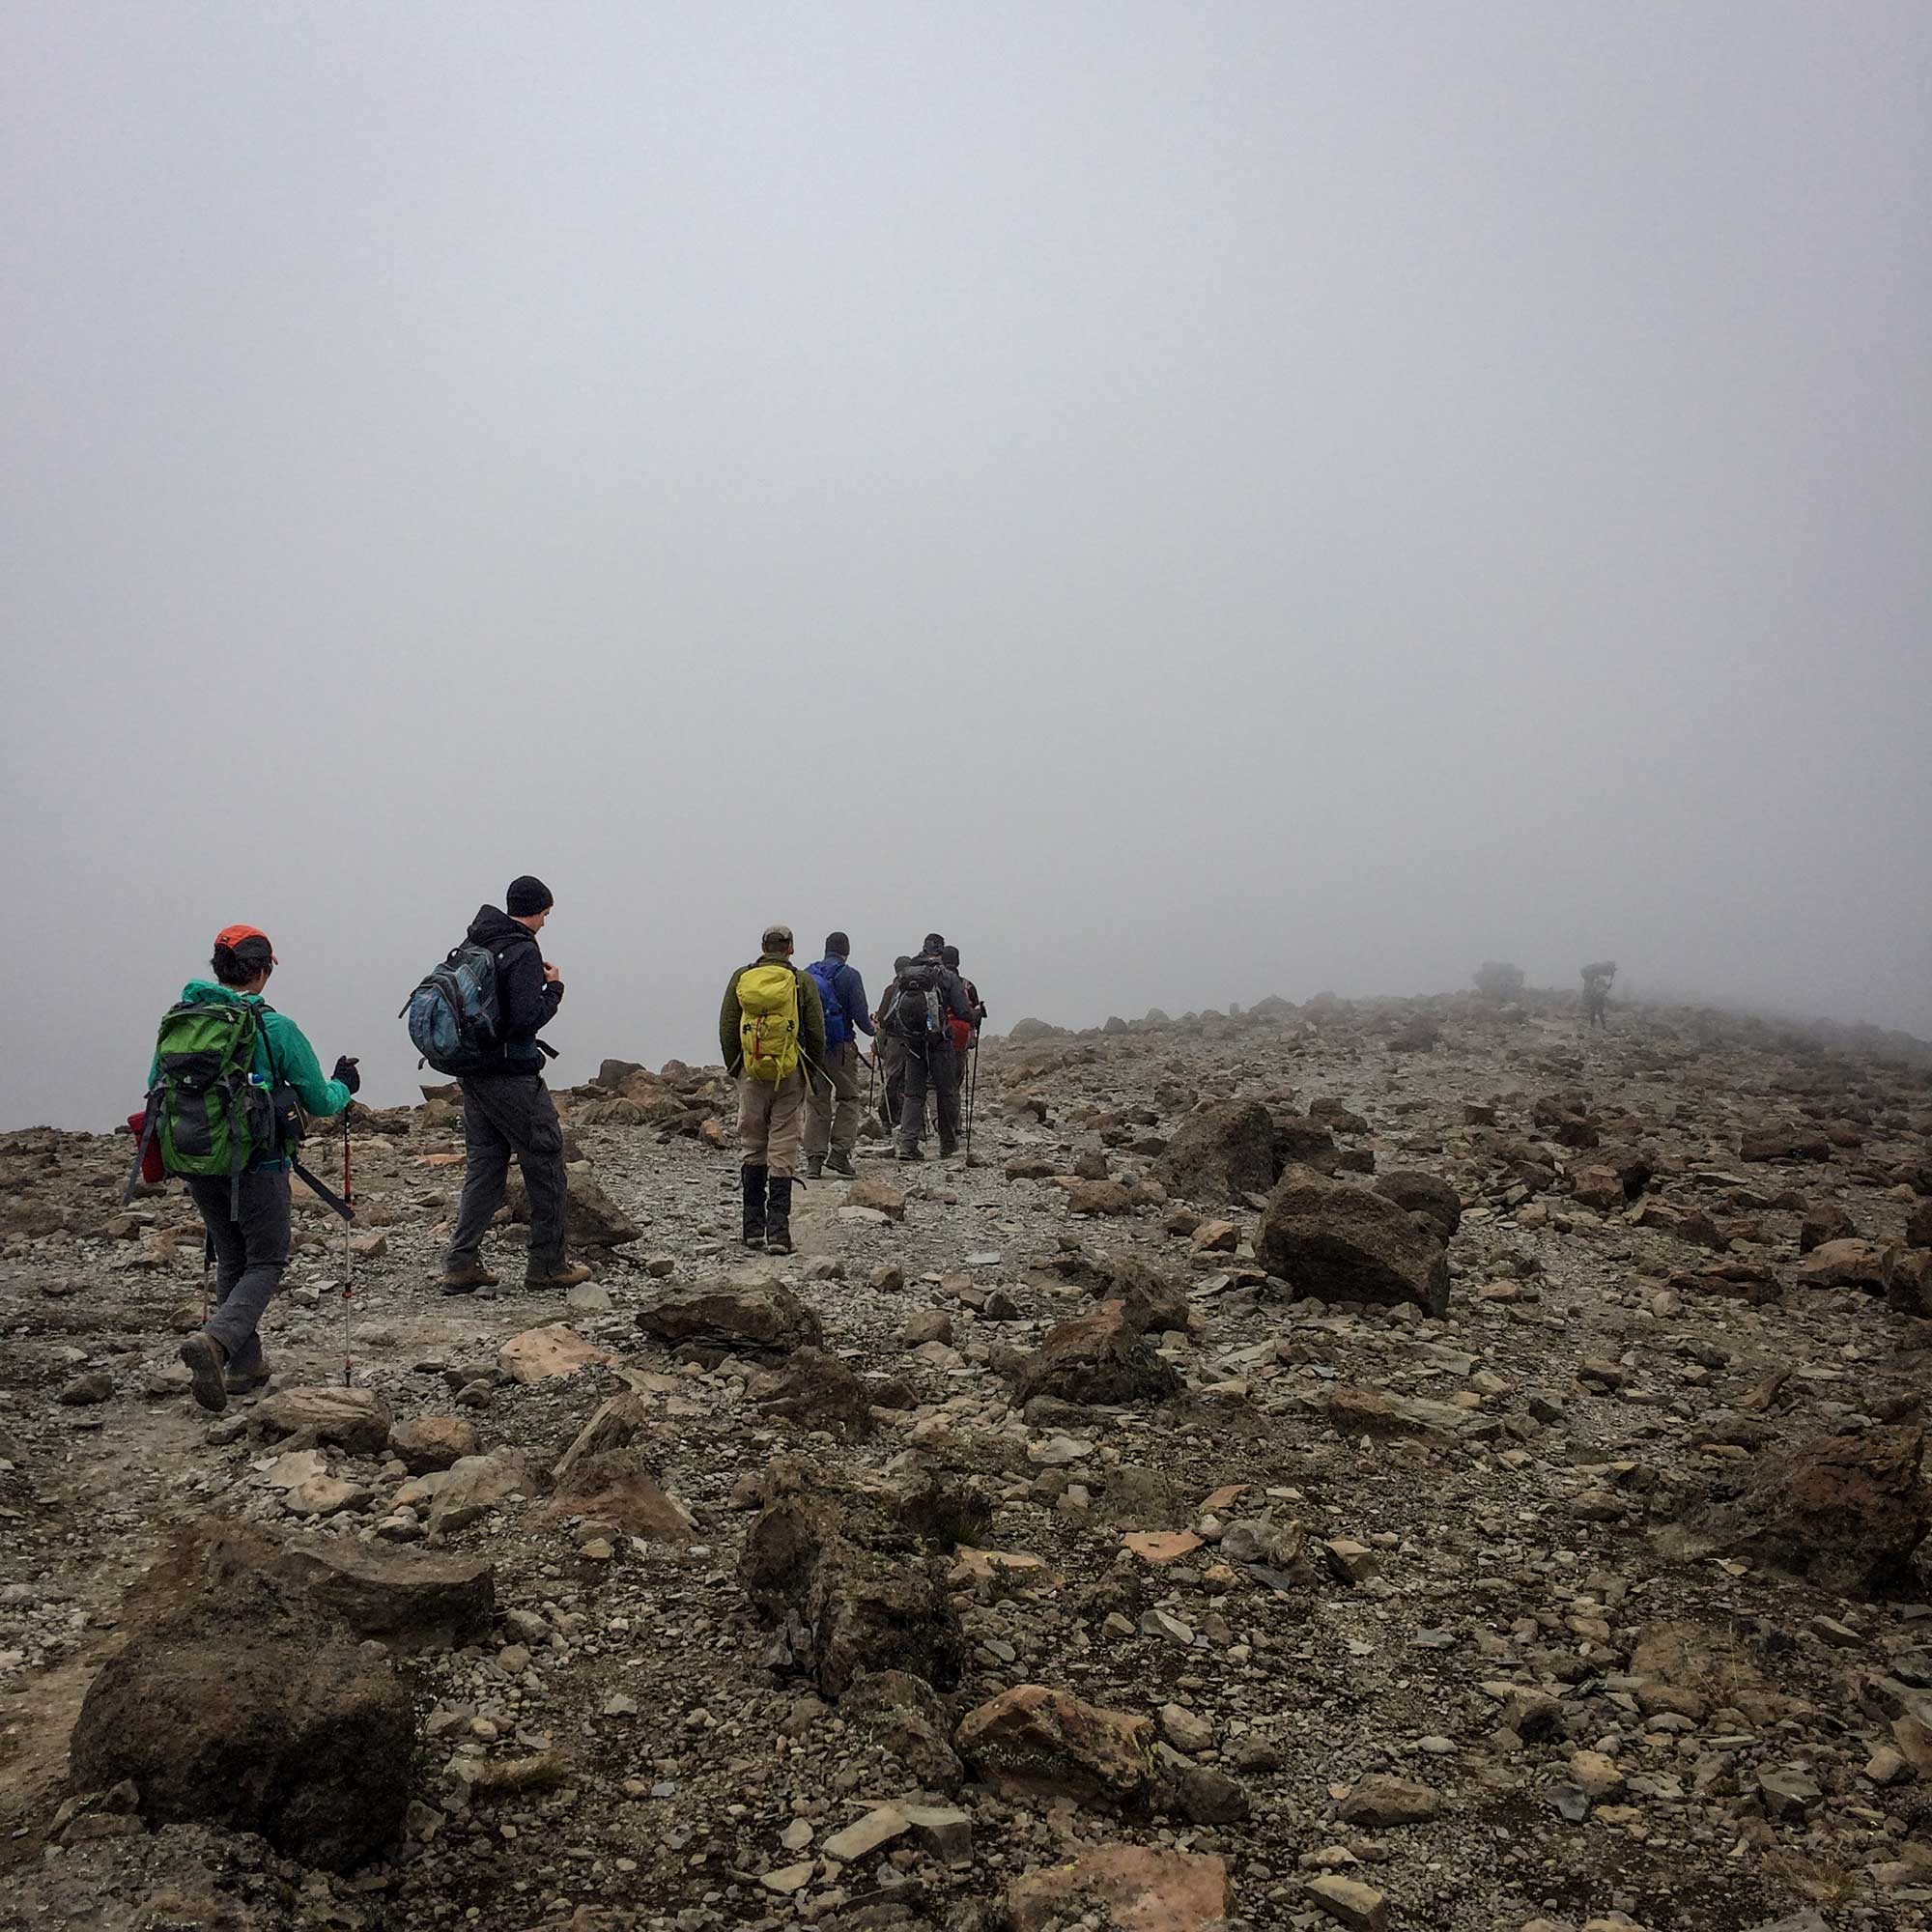 Summit day was the only big mileage day. After climbing to the Summit at 19,000+ feet, we descended through the fog to 10,000 feet later that same day.